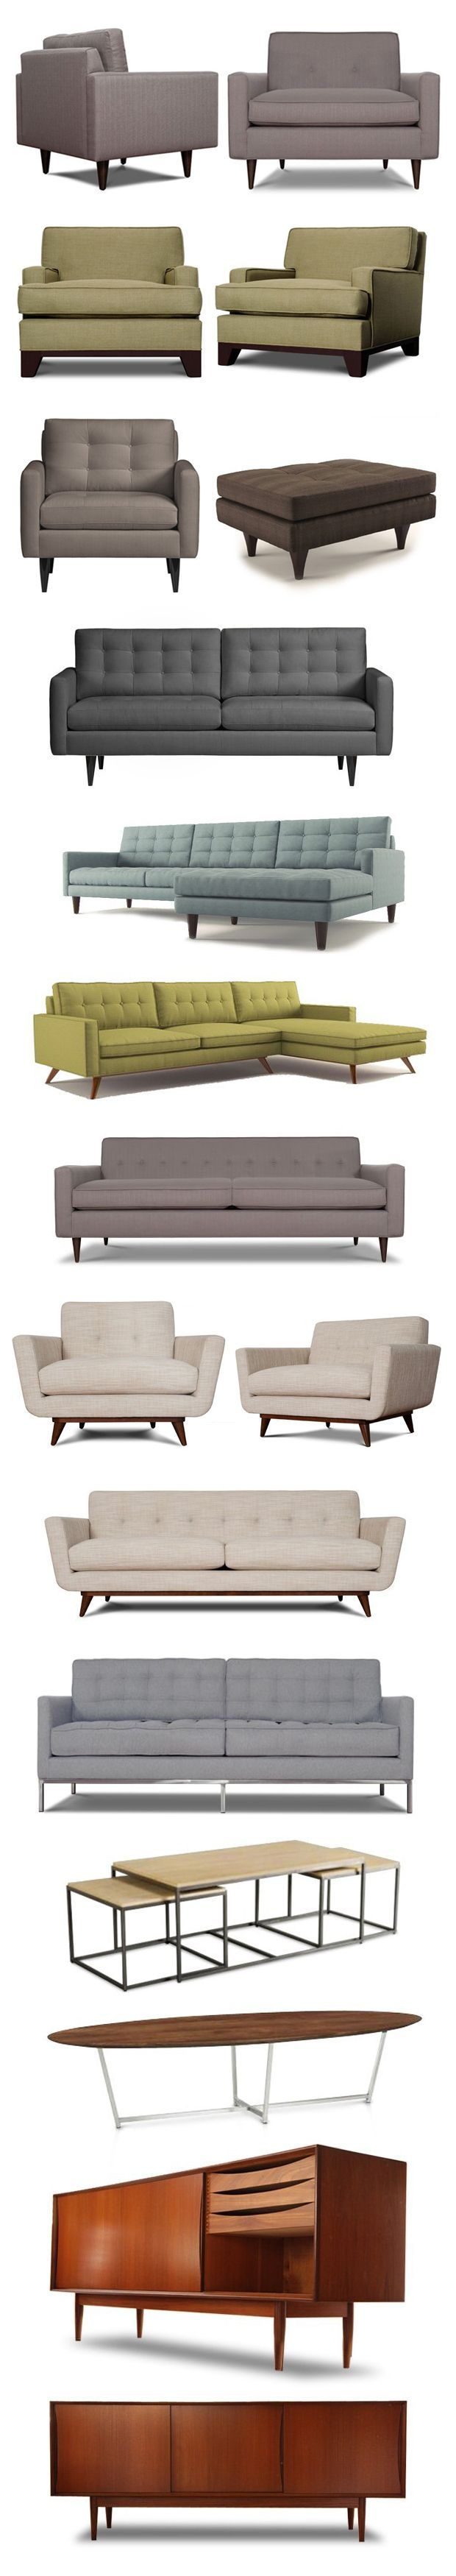 best furniture images on pinterest couches family rooms and